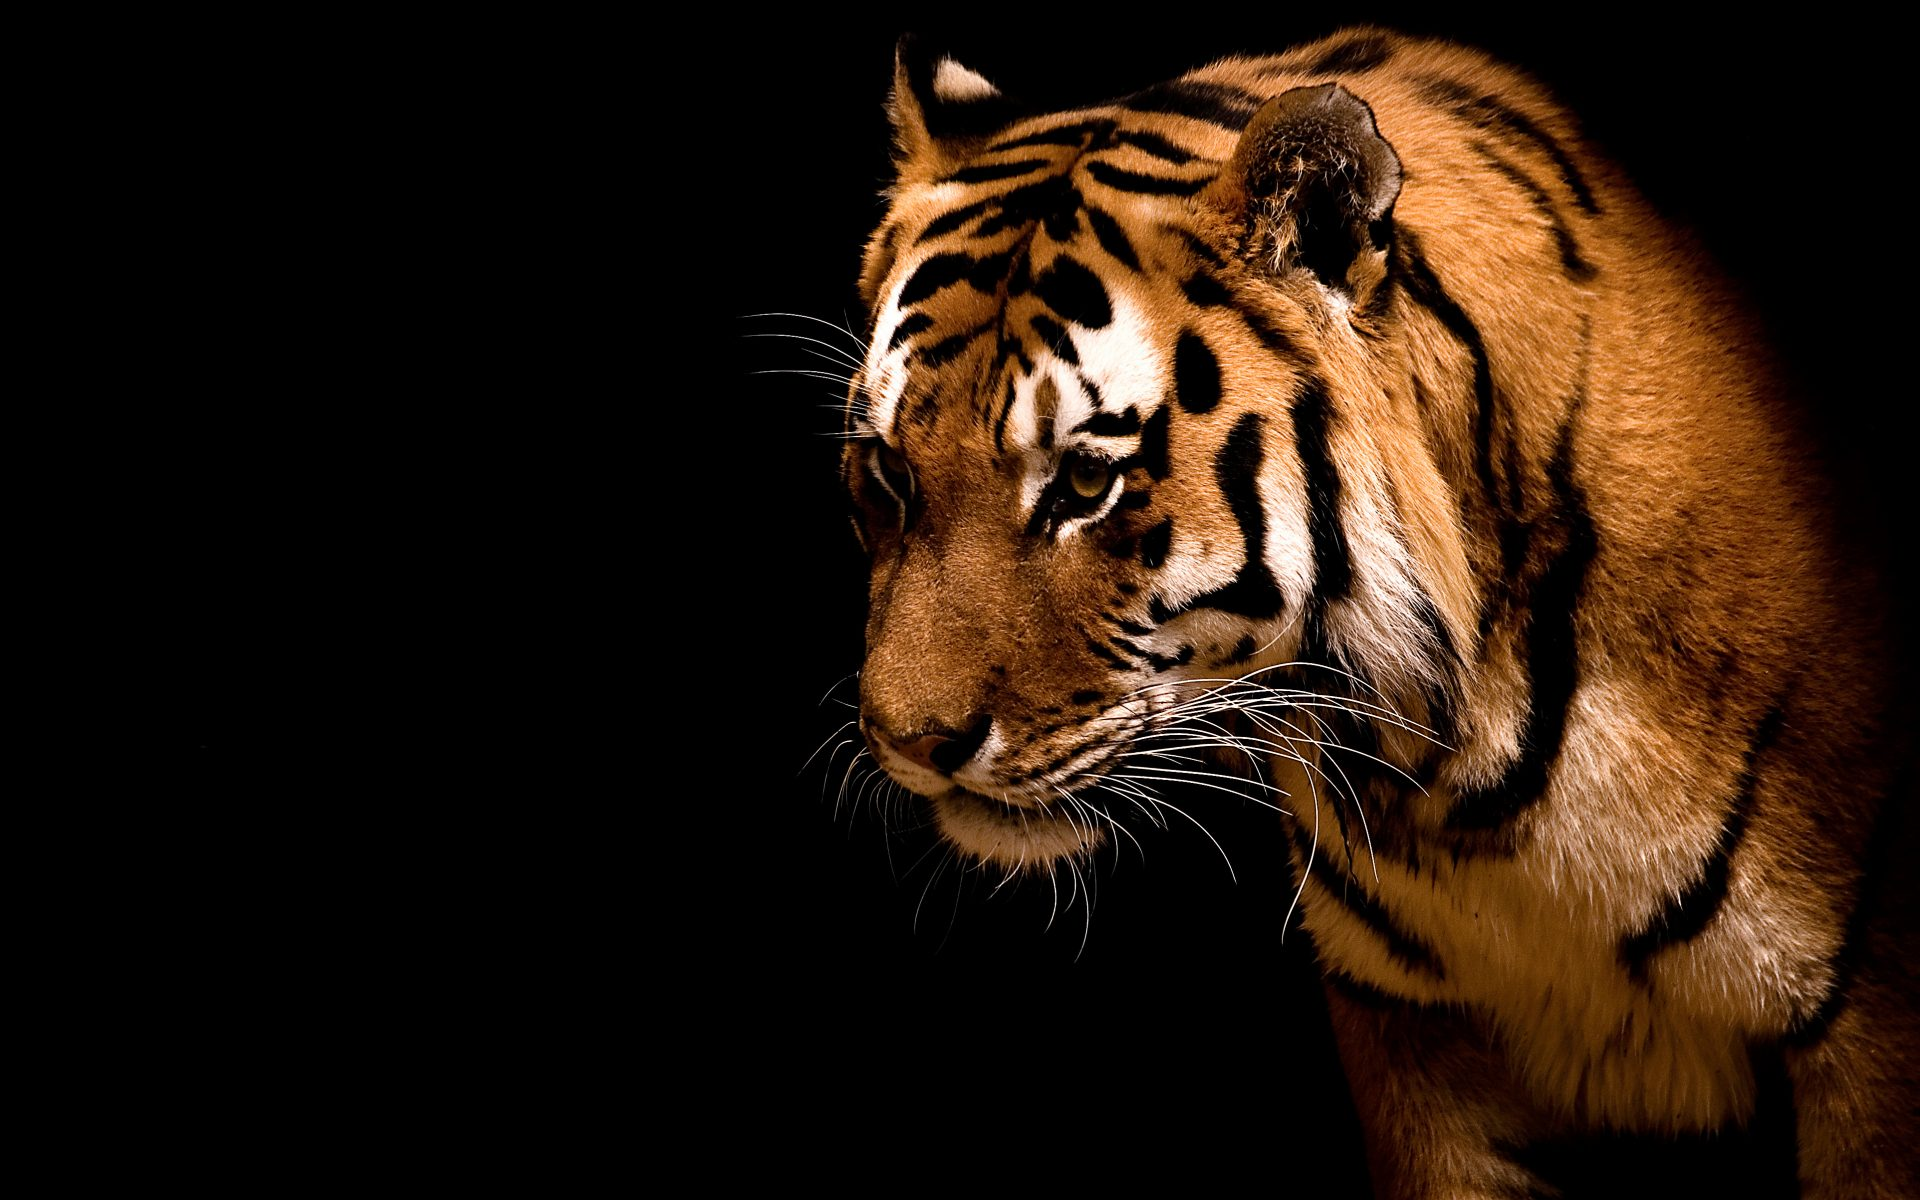 hd wallpaper wild animal background desktophtmlsthash3aTwLs3Wdpuf 1920x1200